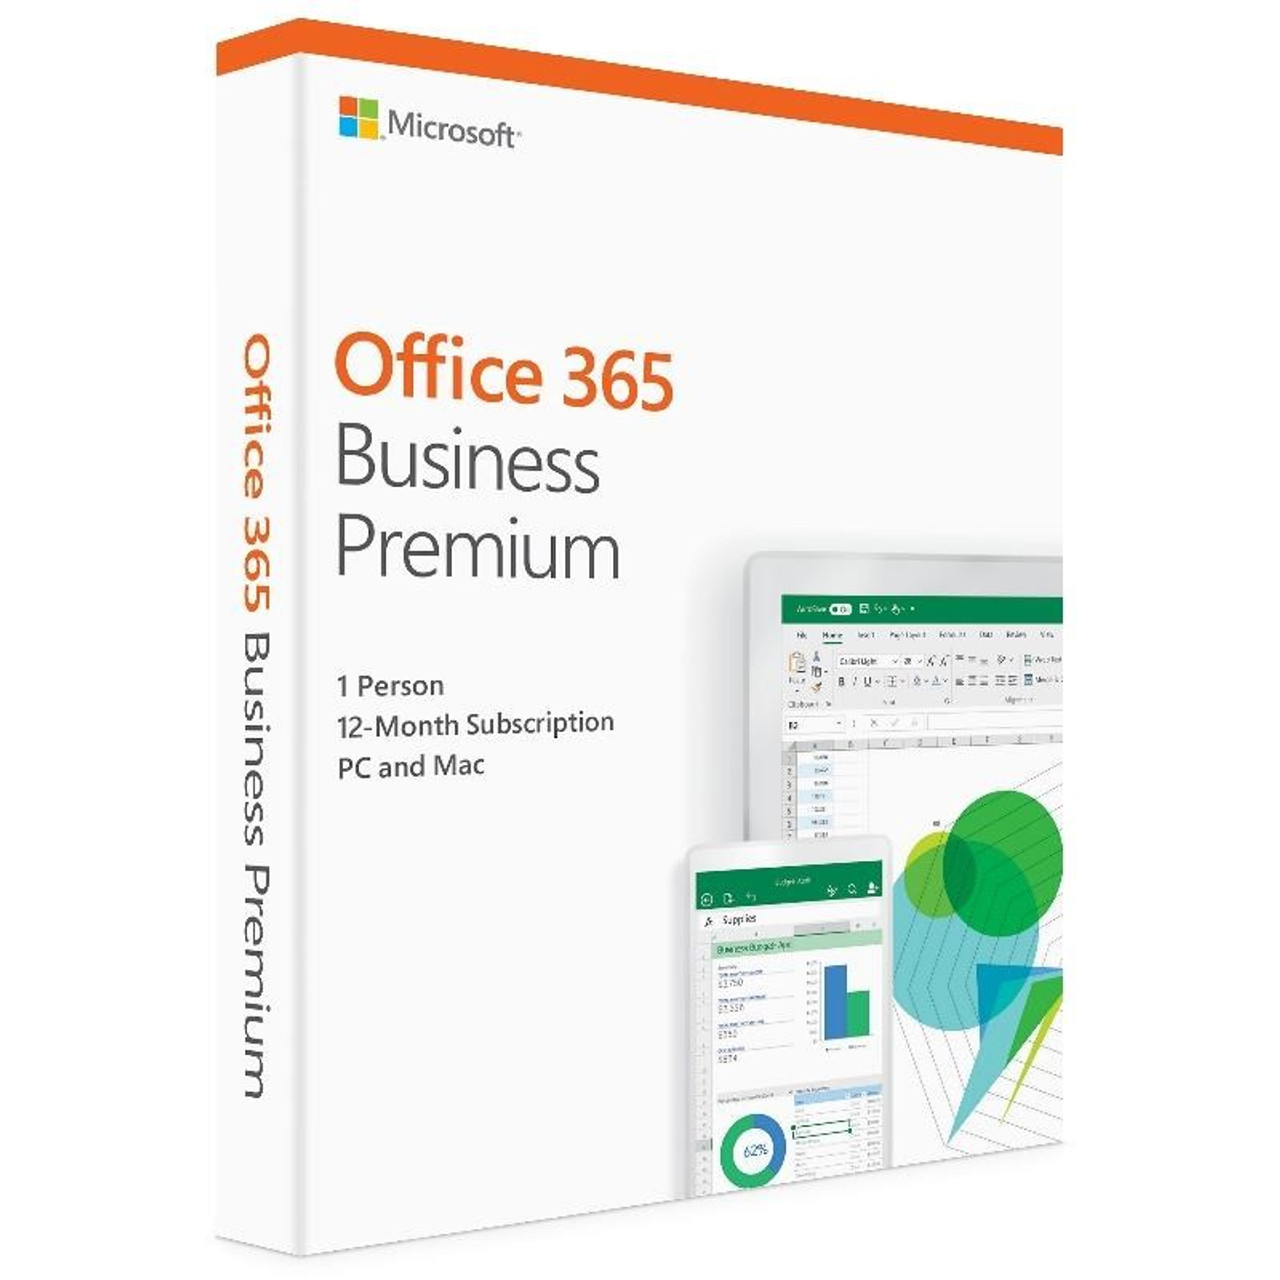 Product image for Microsoft Office 365 2019 Business Premium 1 Year Licence - Medialess Retail | CX Computer Superstore